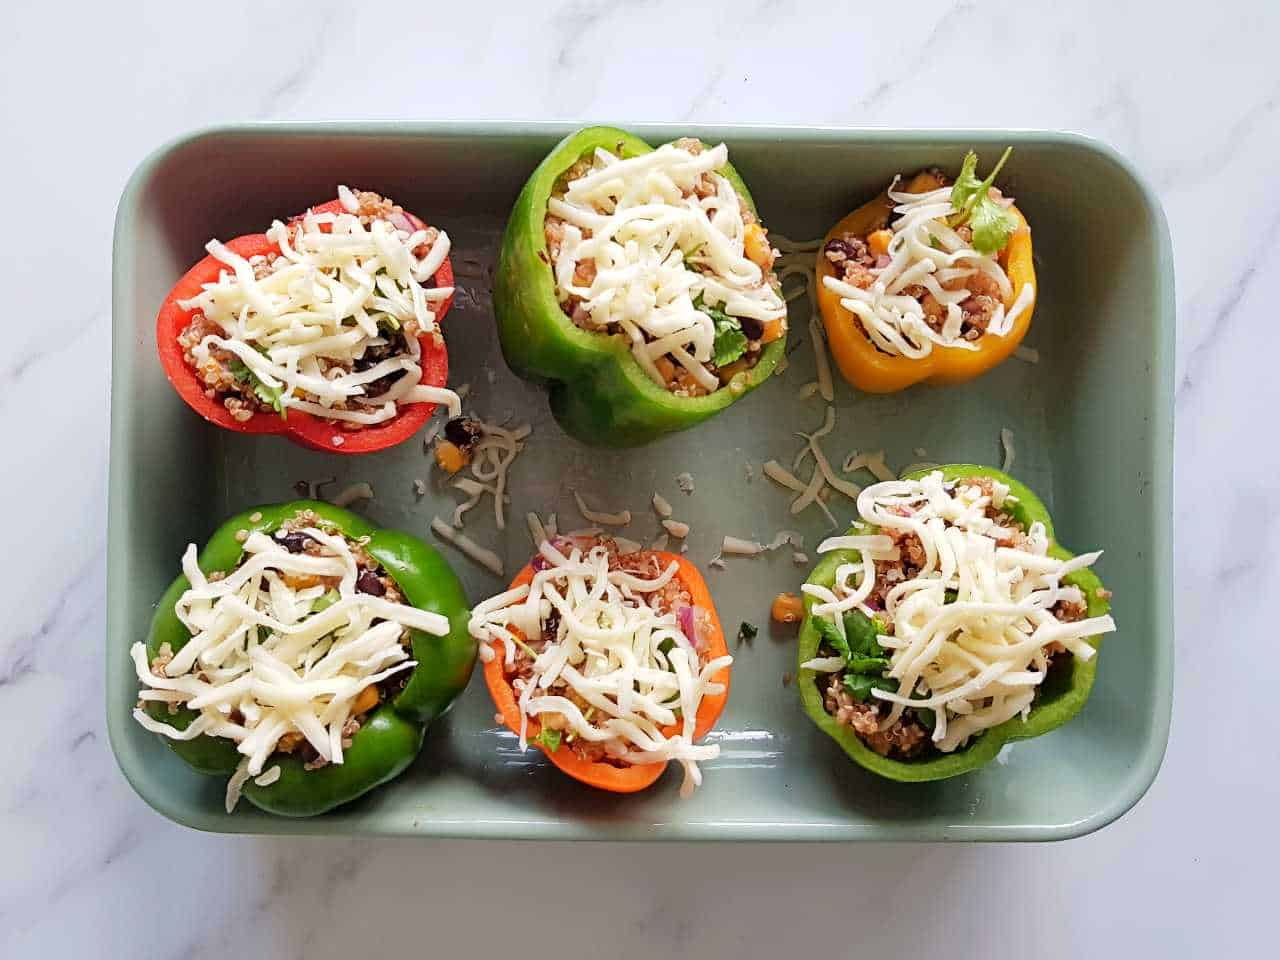 Uncooked stuffed peppers in an oven dish.